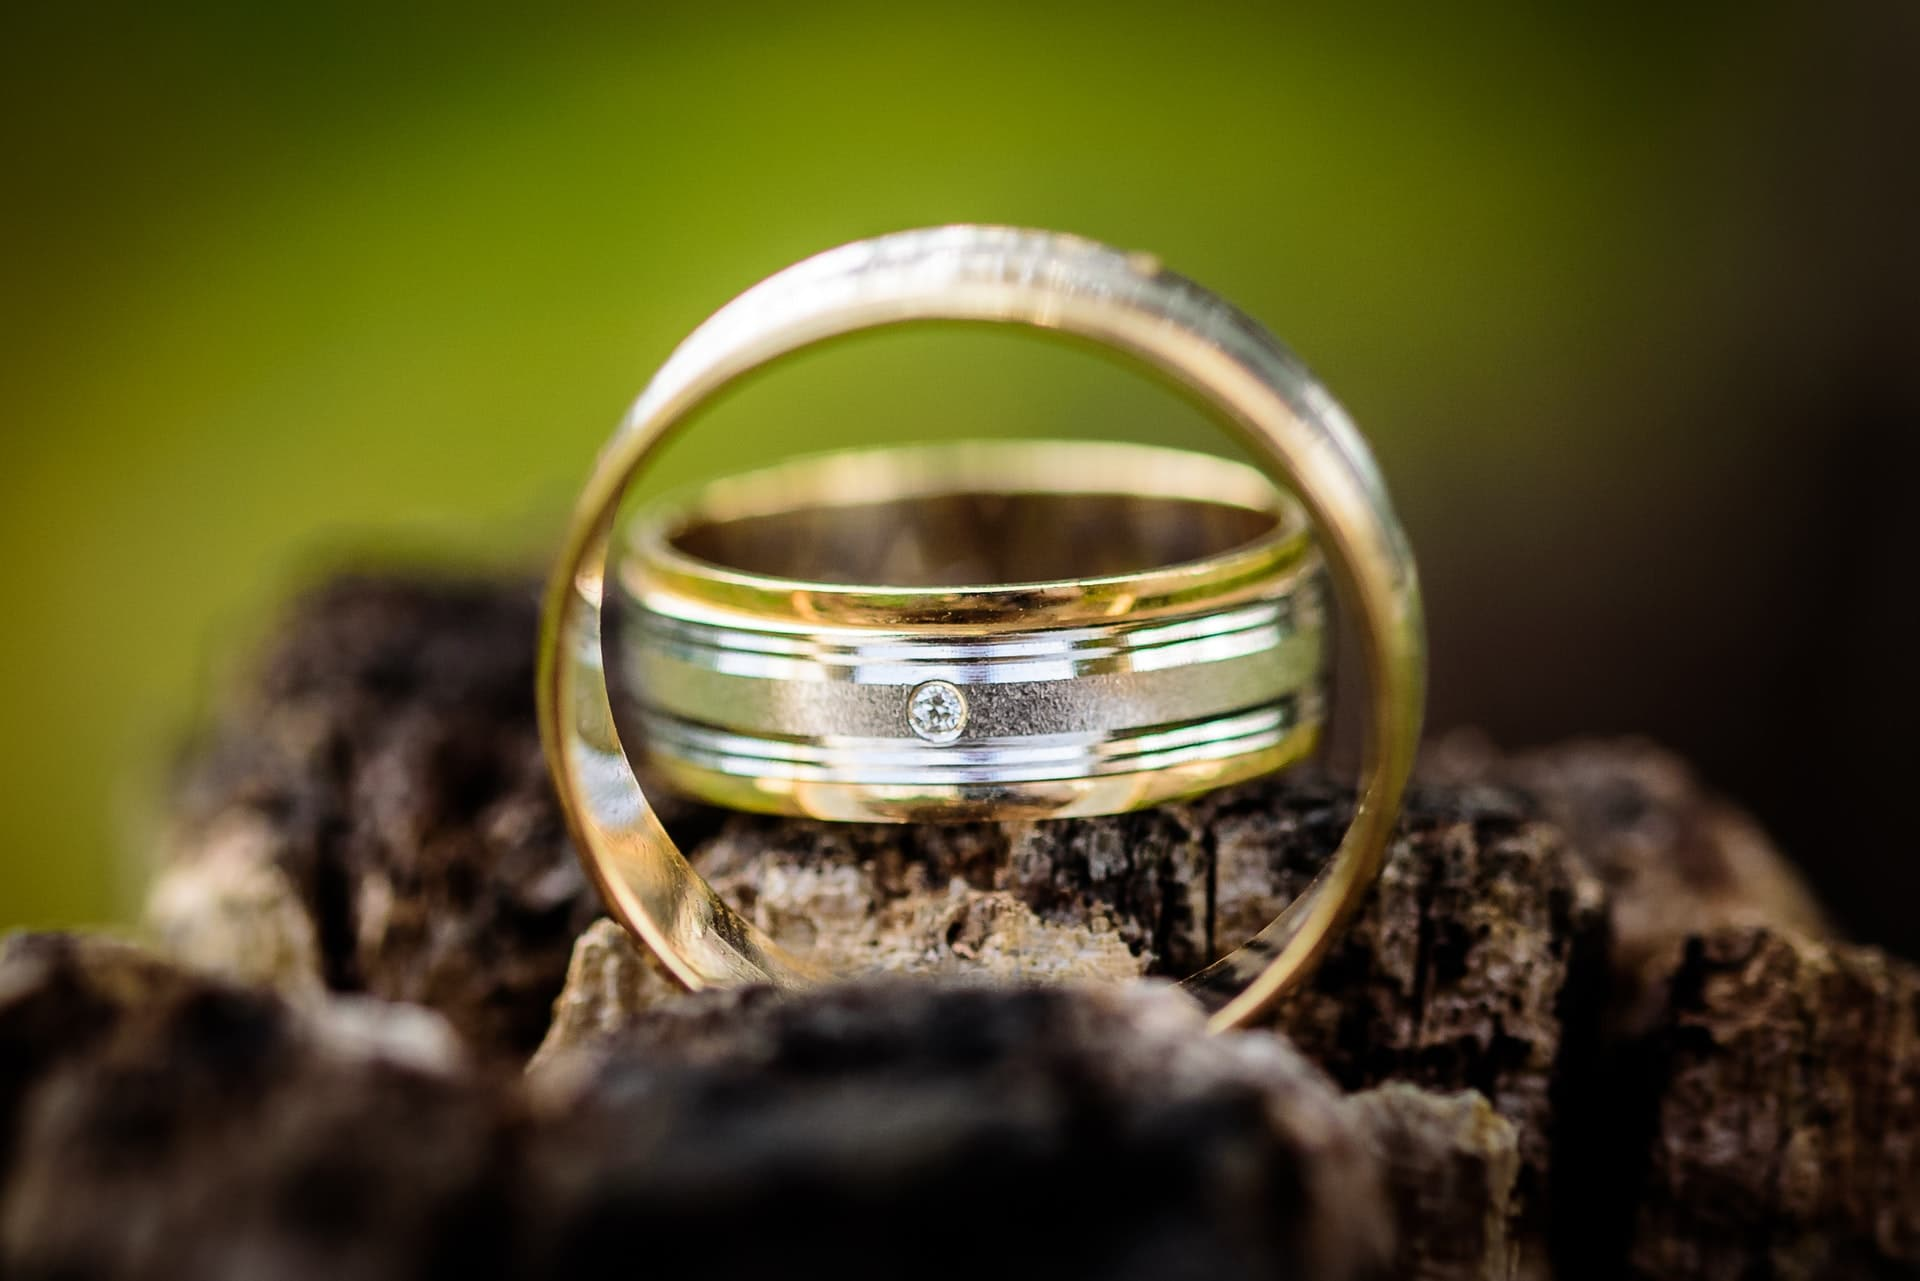 How To Clean A Diamond Ring: 6 Methods Safe To Try